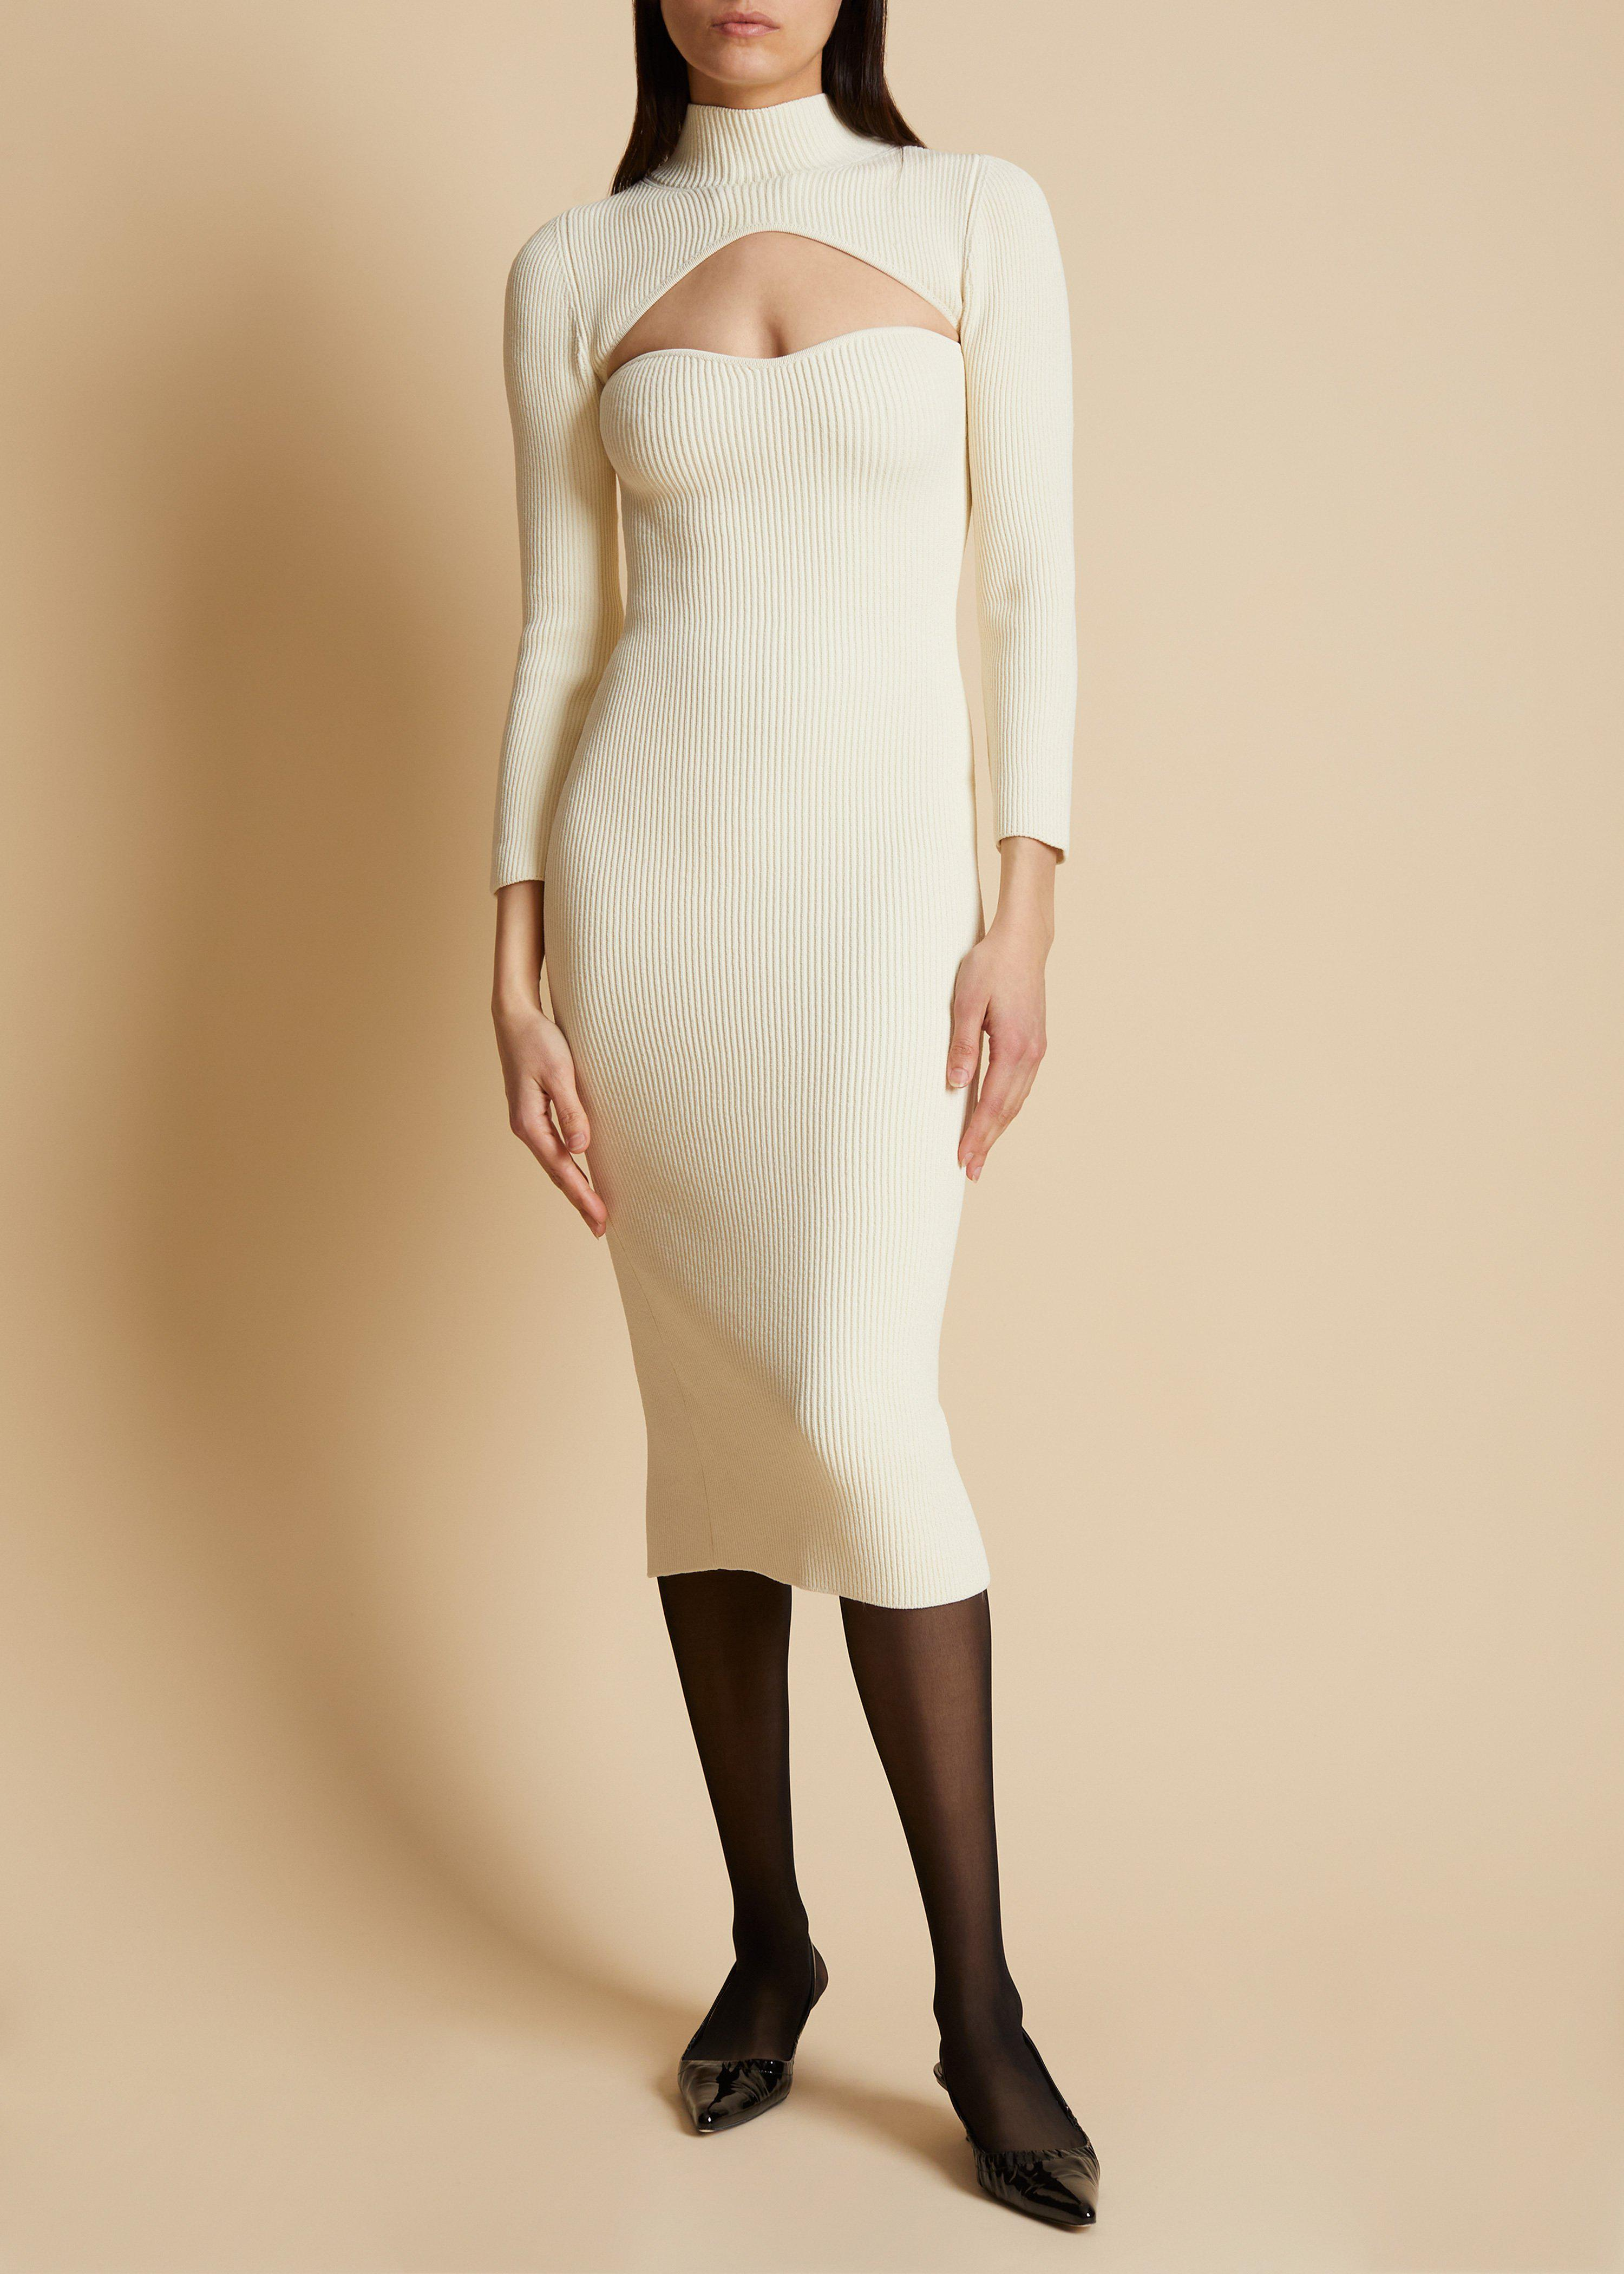 The Mischa Dress in Ivory